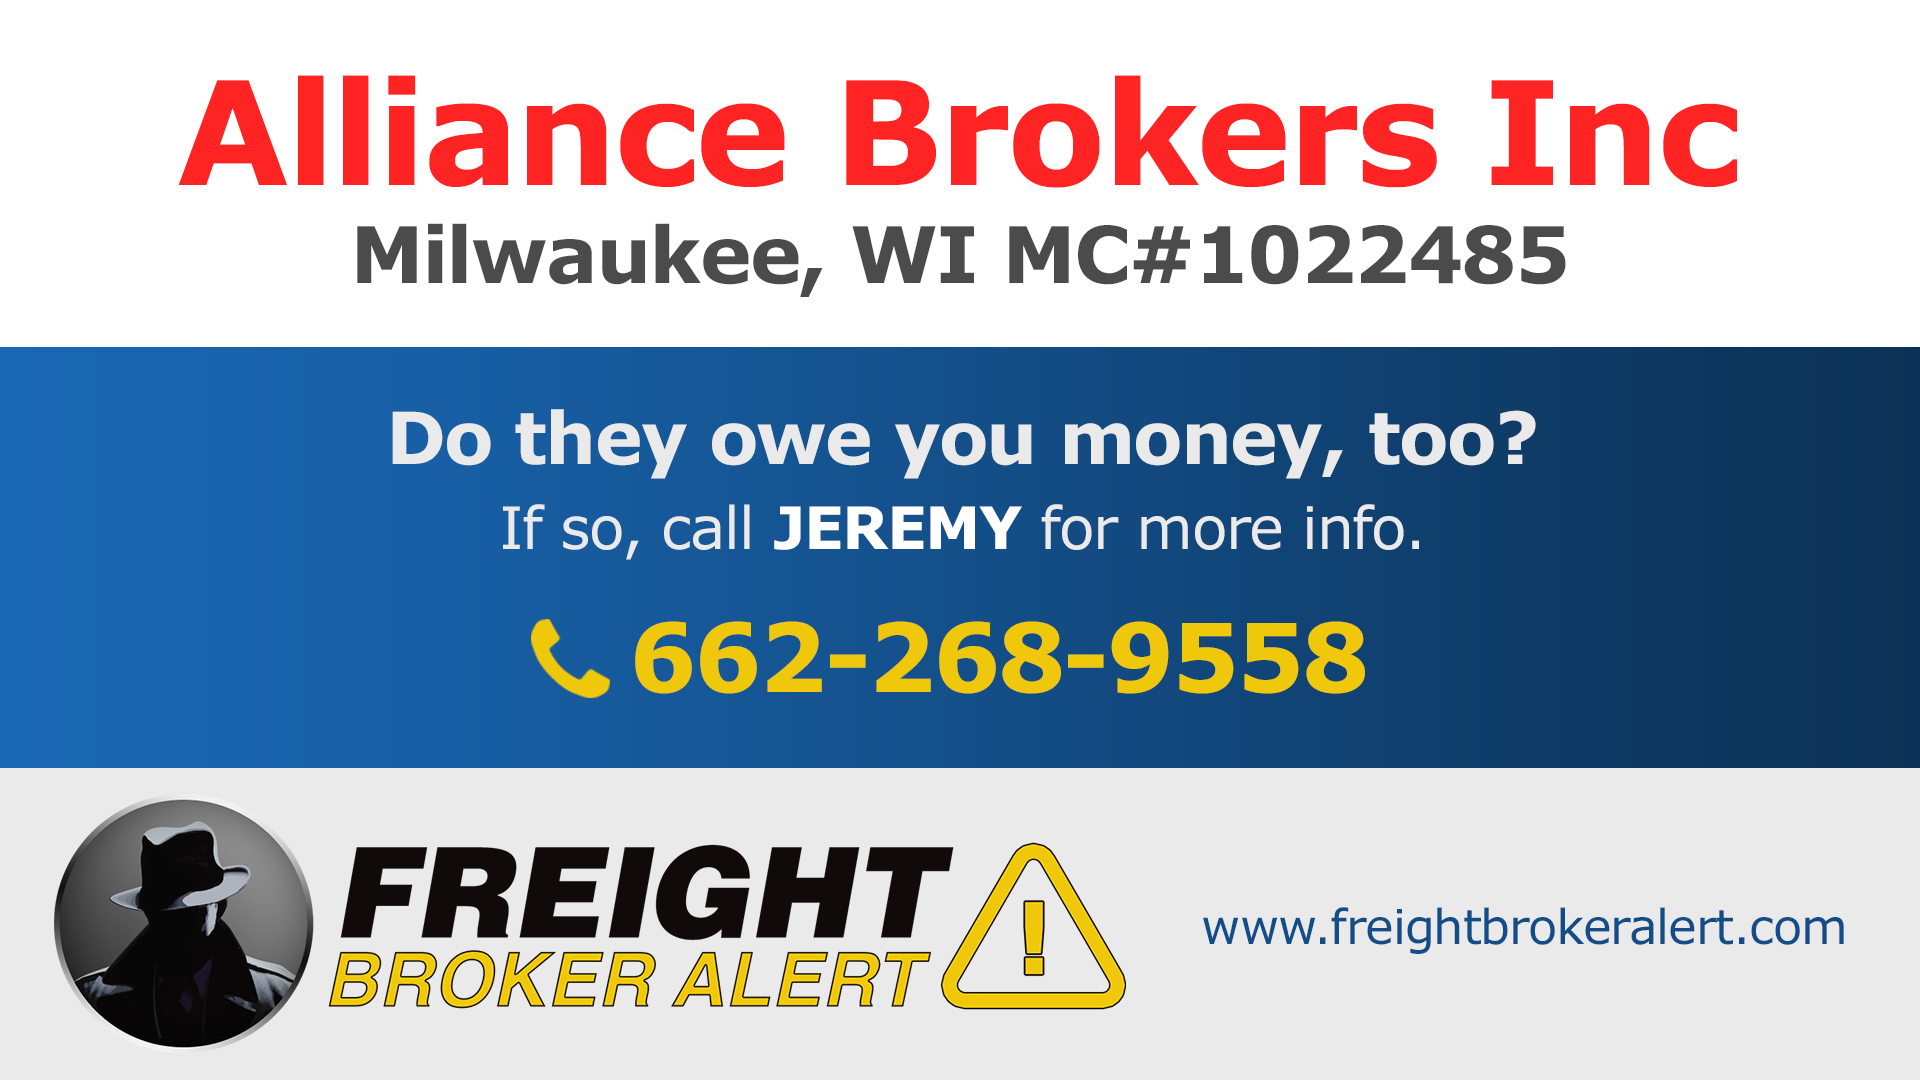 Alliance Brokers Inc Wisconsin